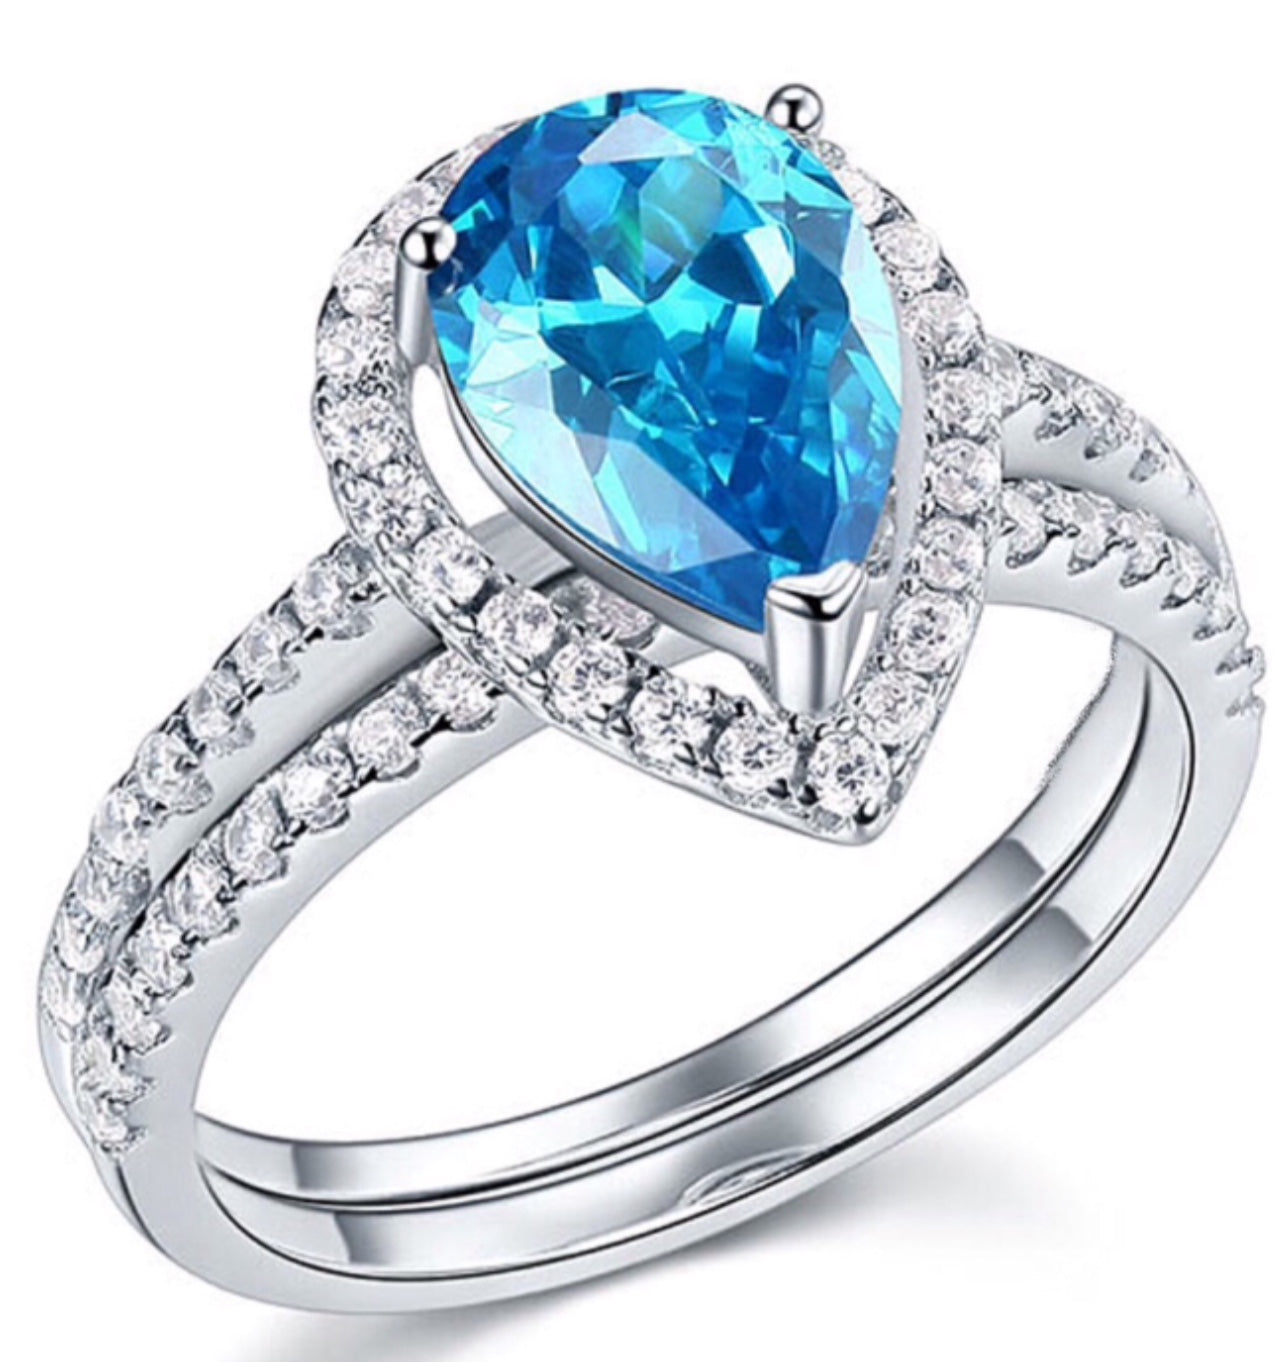 Ring Set | 2ct Blue Cubic Zirconia Pear Shape Promise Cocktail Ring